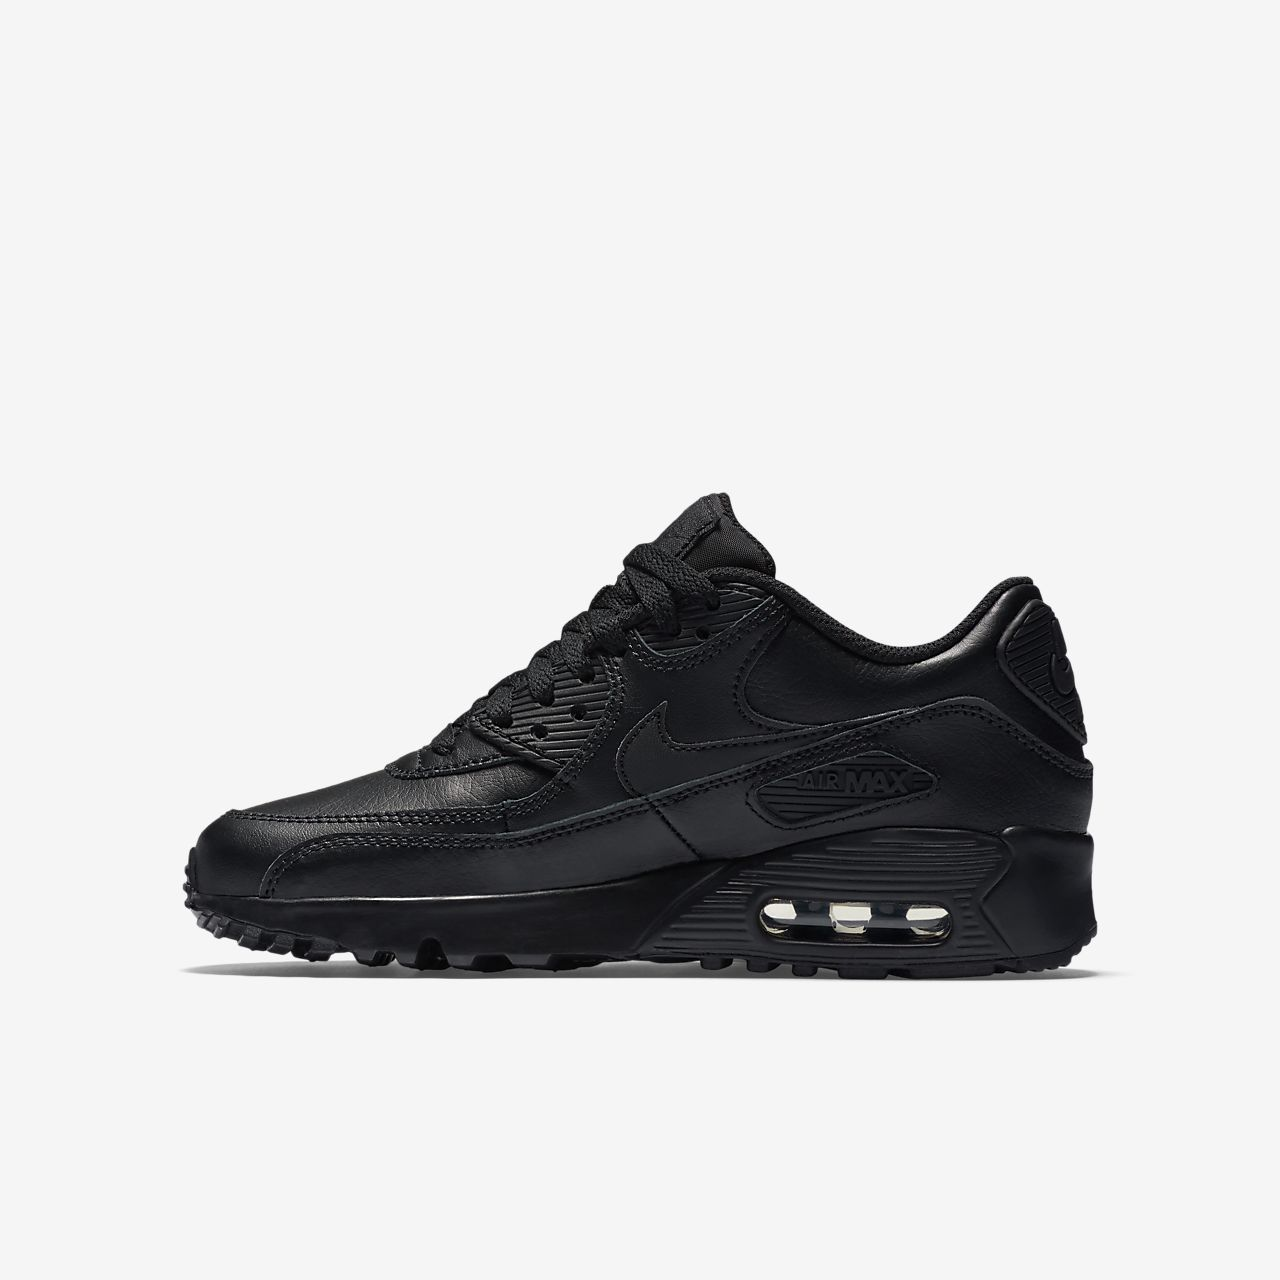 Nike Shoes Black Colour